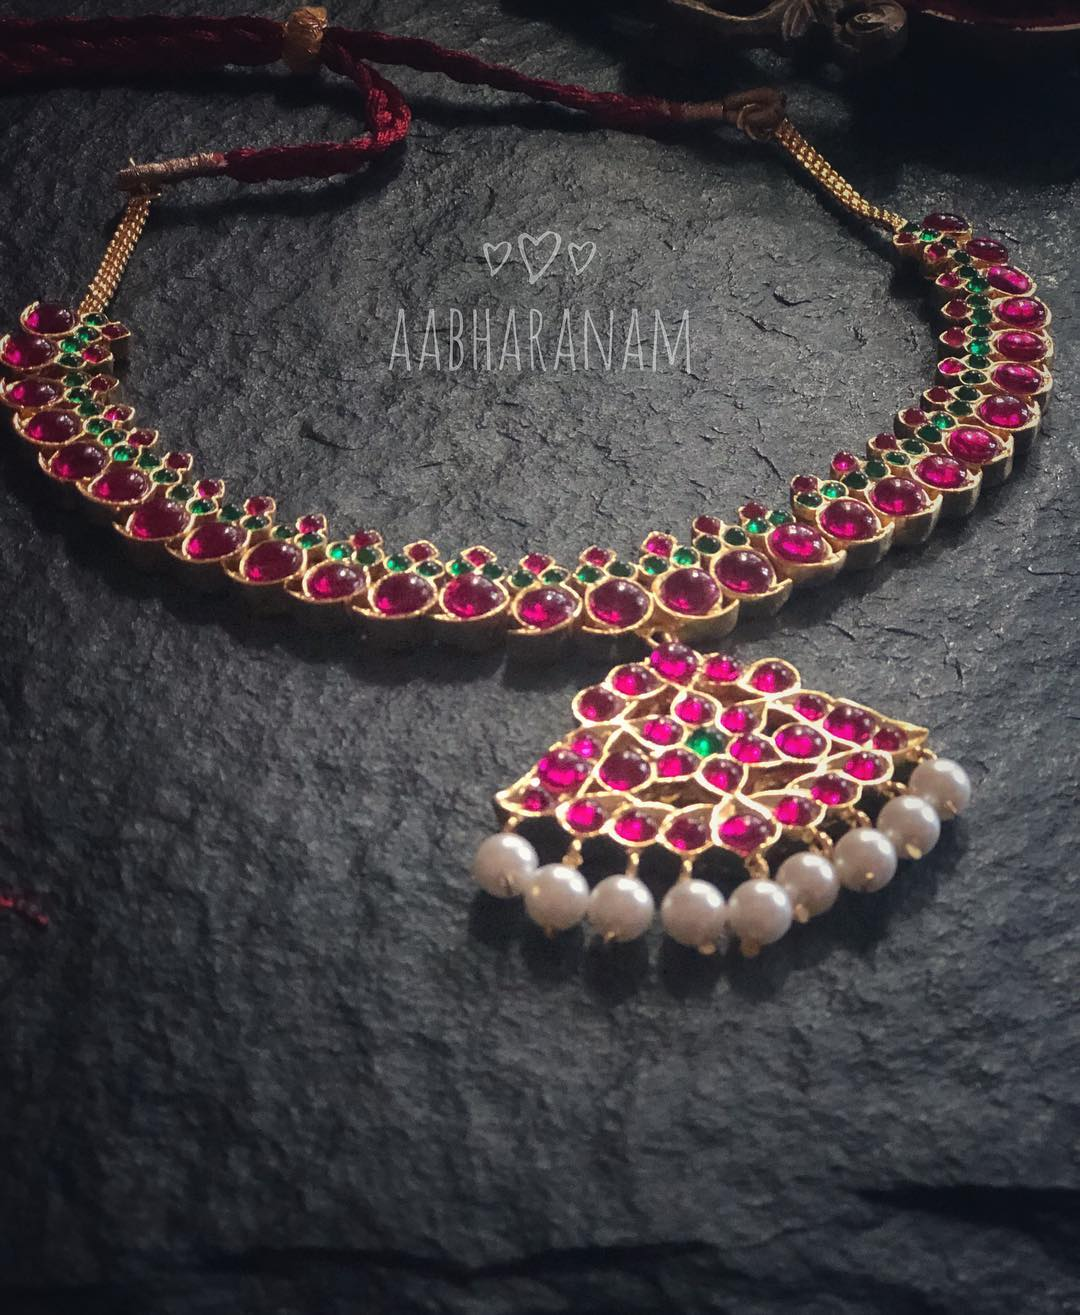 kemp-attigai-necklace-designs (8)